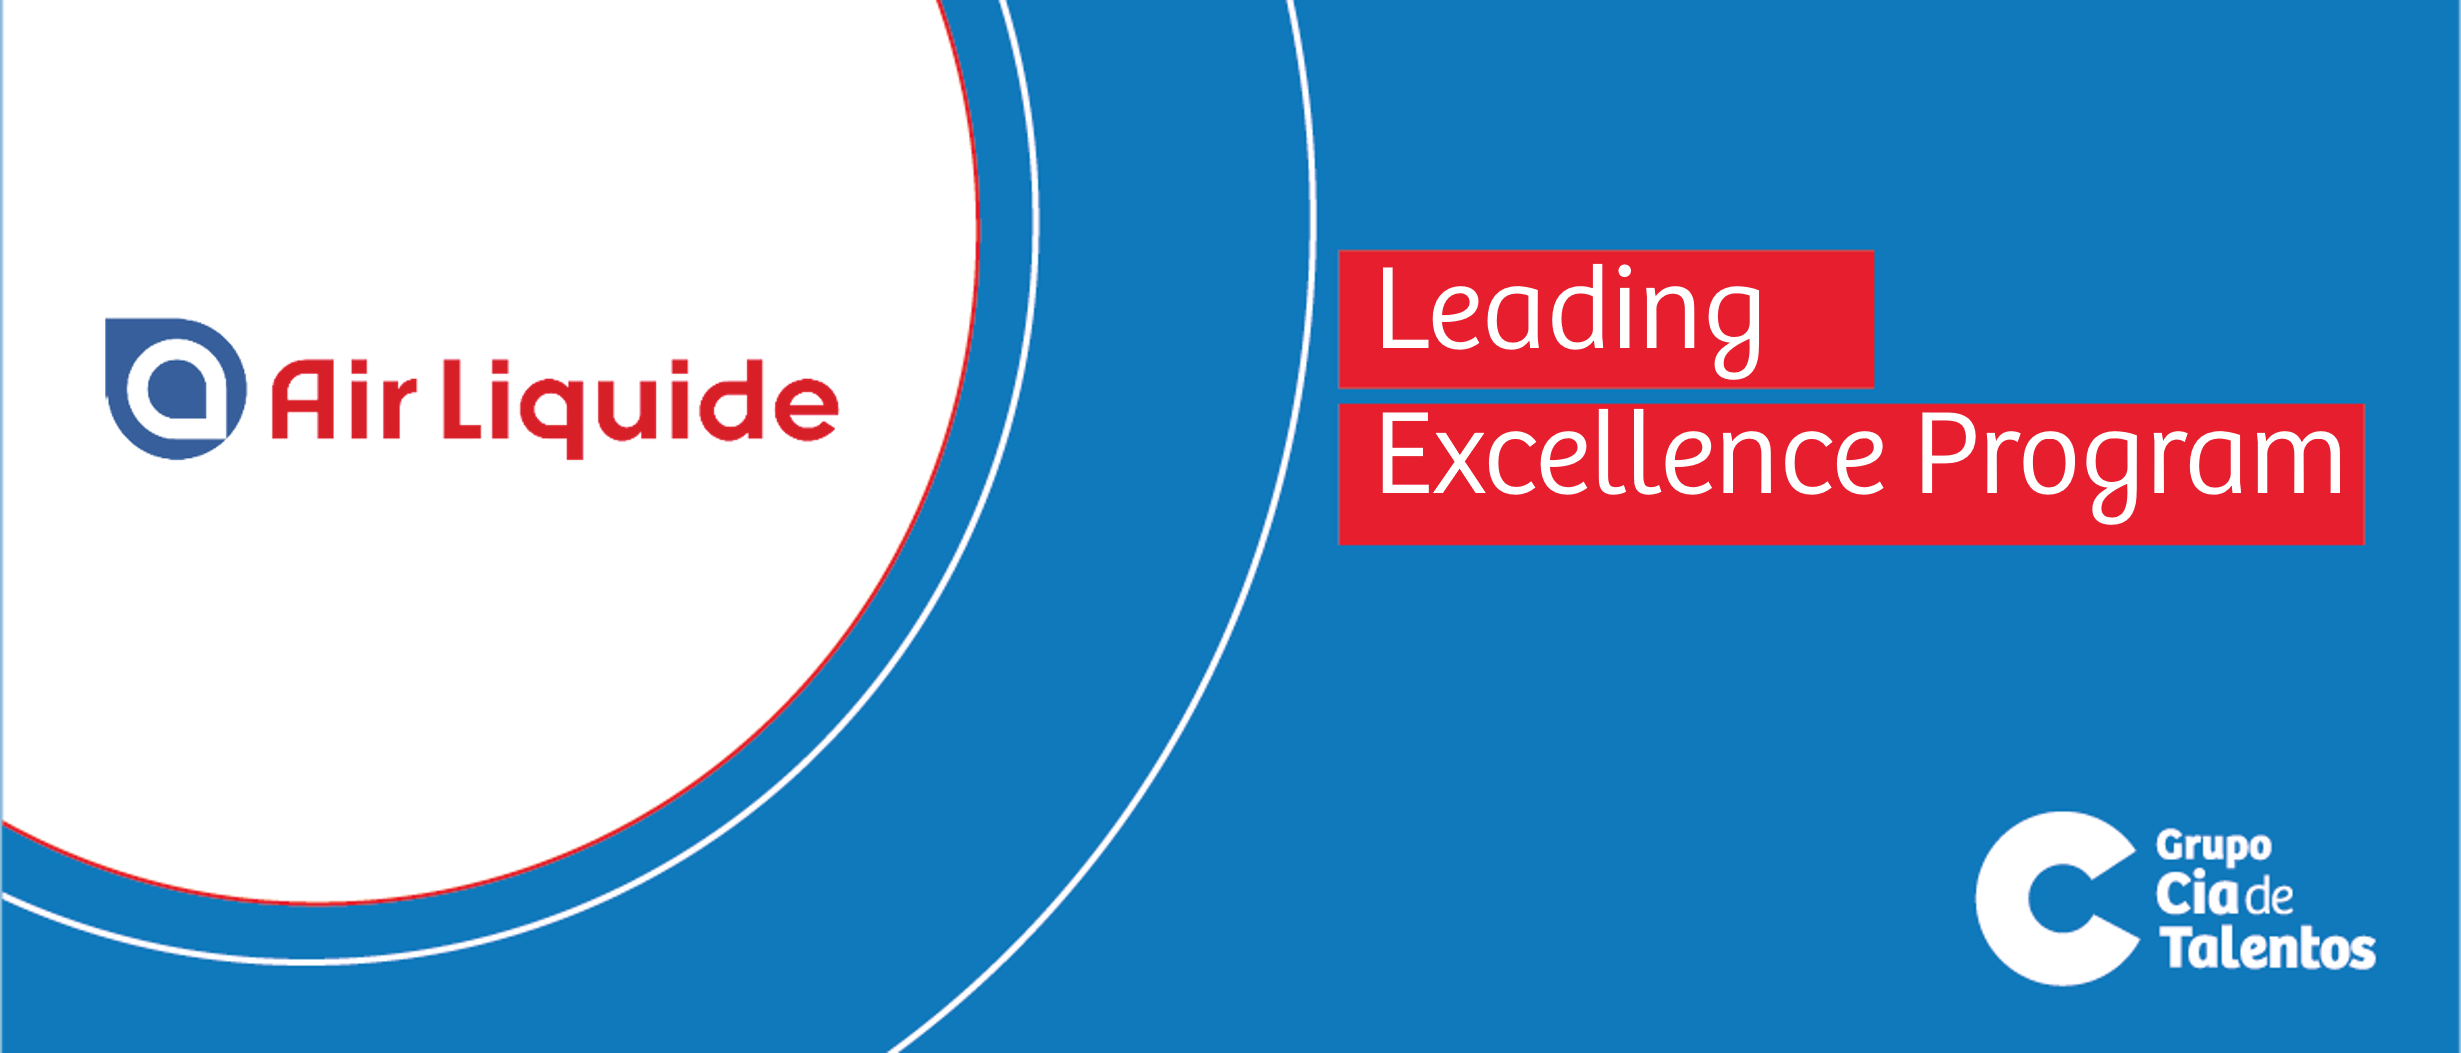 AIR LIQUIDE LEADING EXCELLENCE PROGRAM 2018